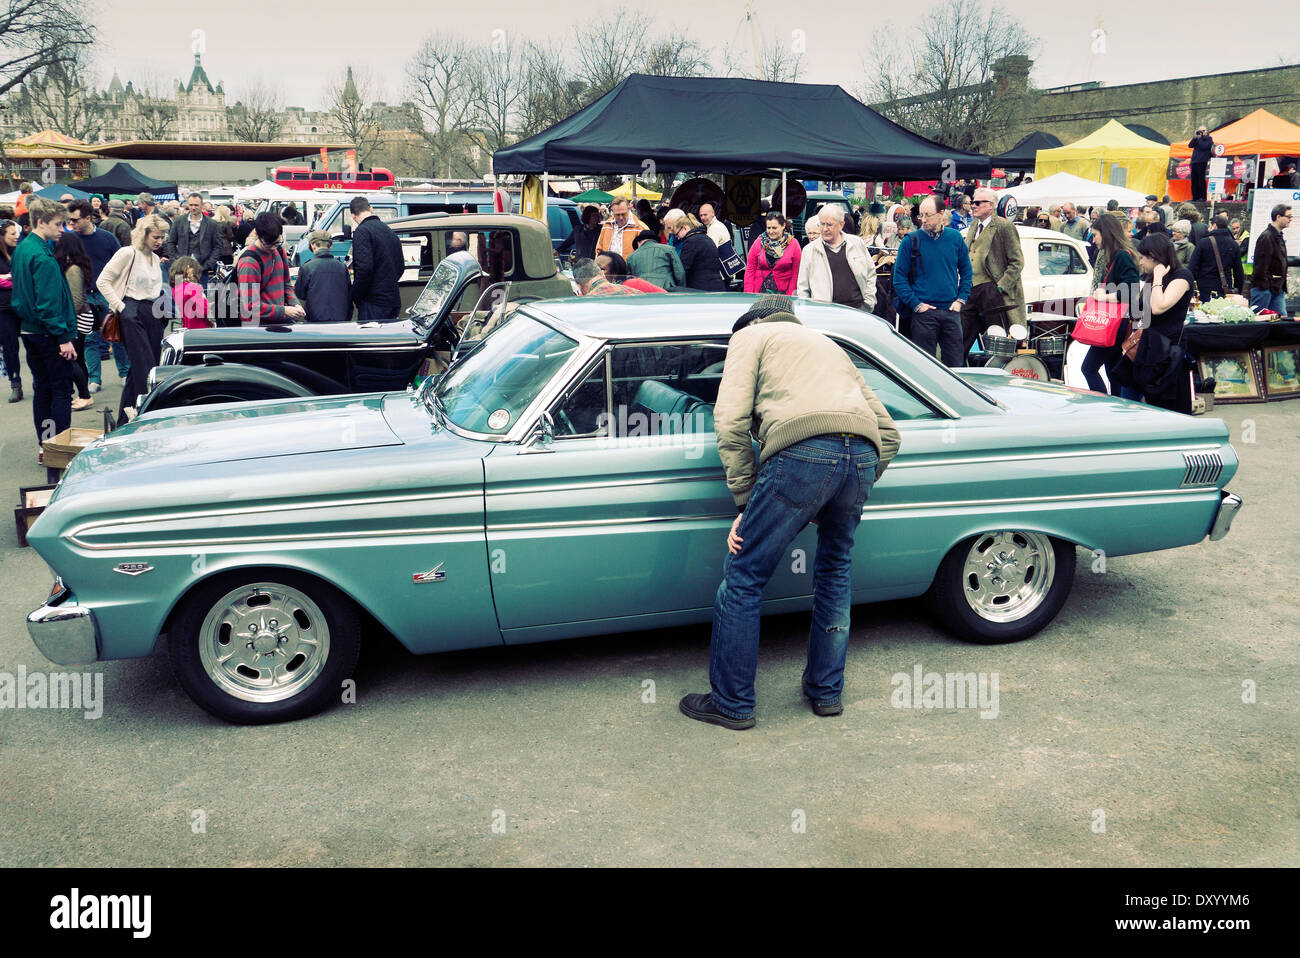 Ford Falcon at the Classic car boot sale London south Bank london ...